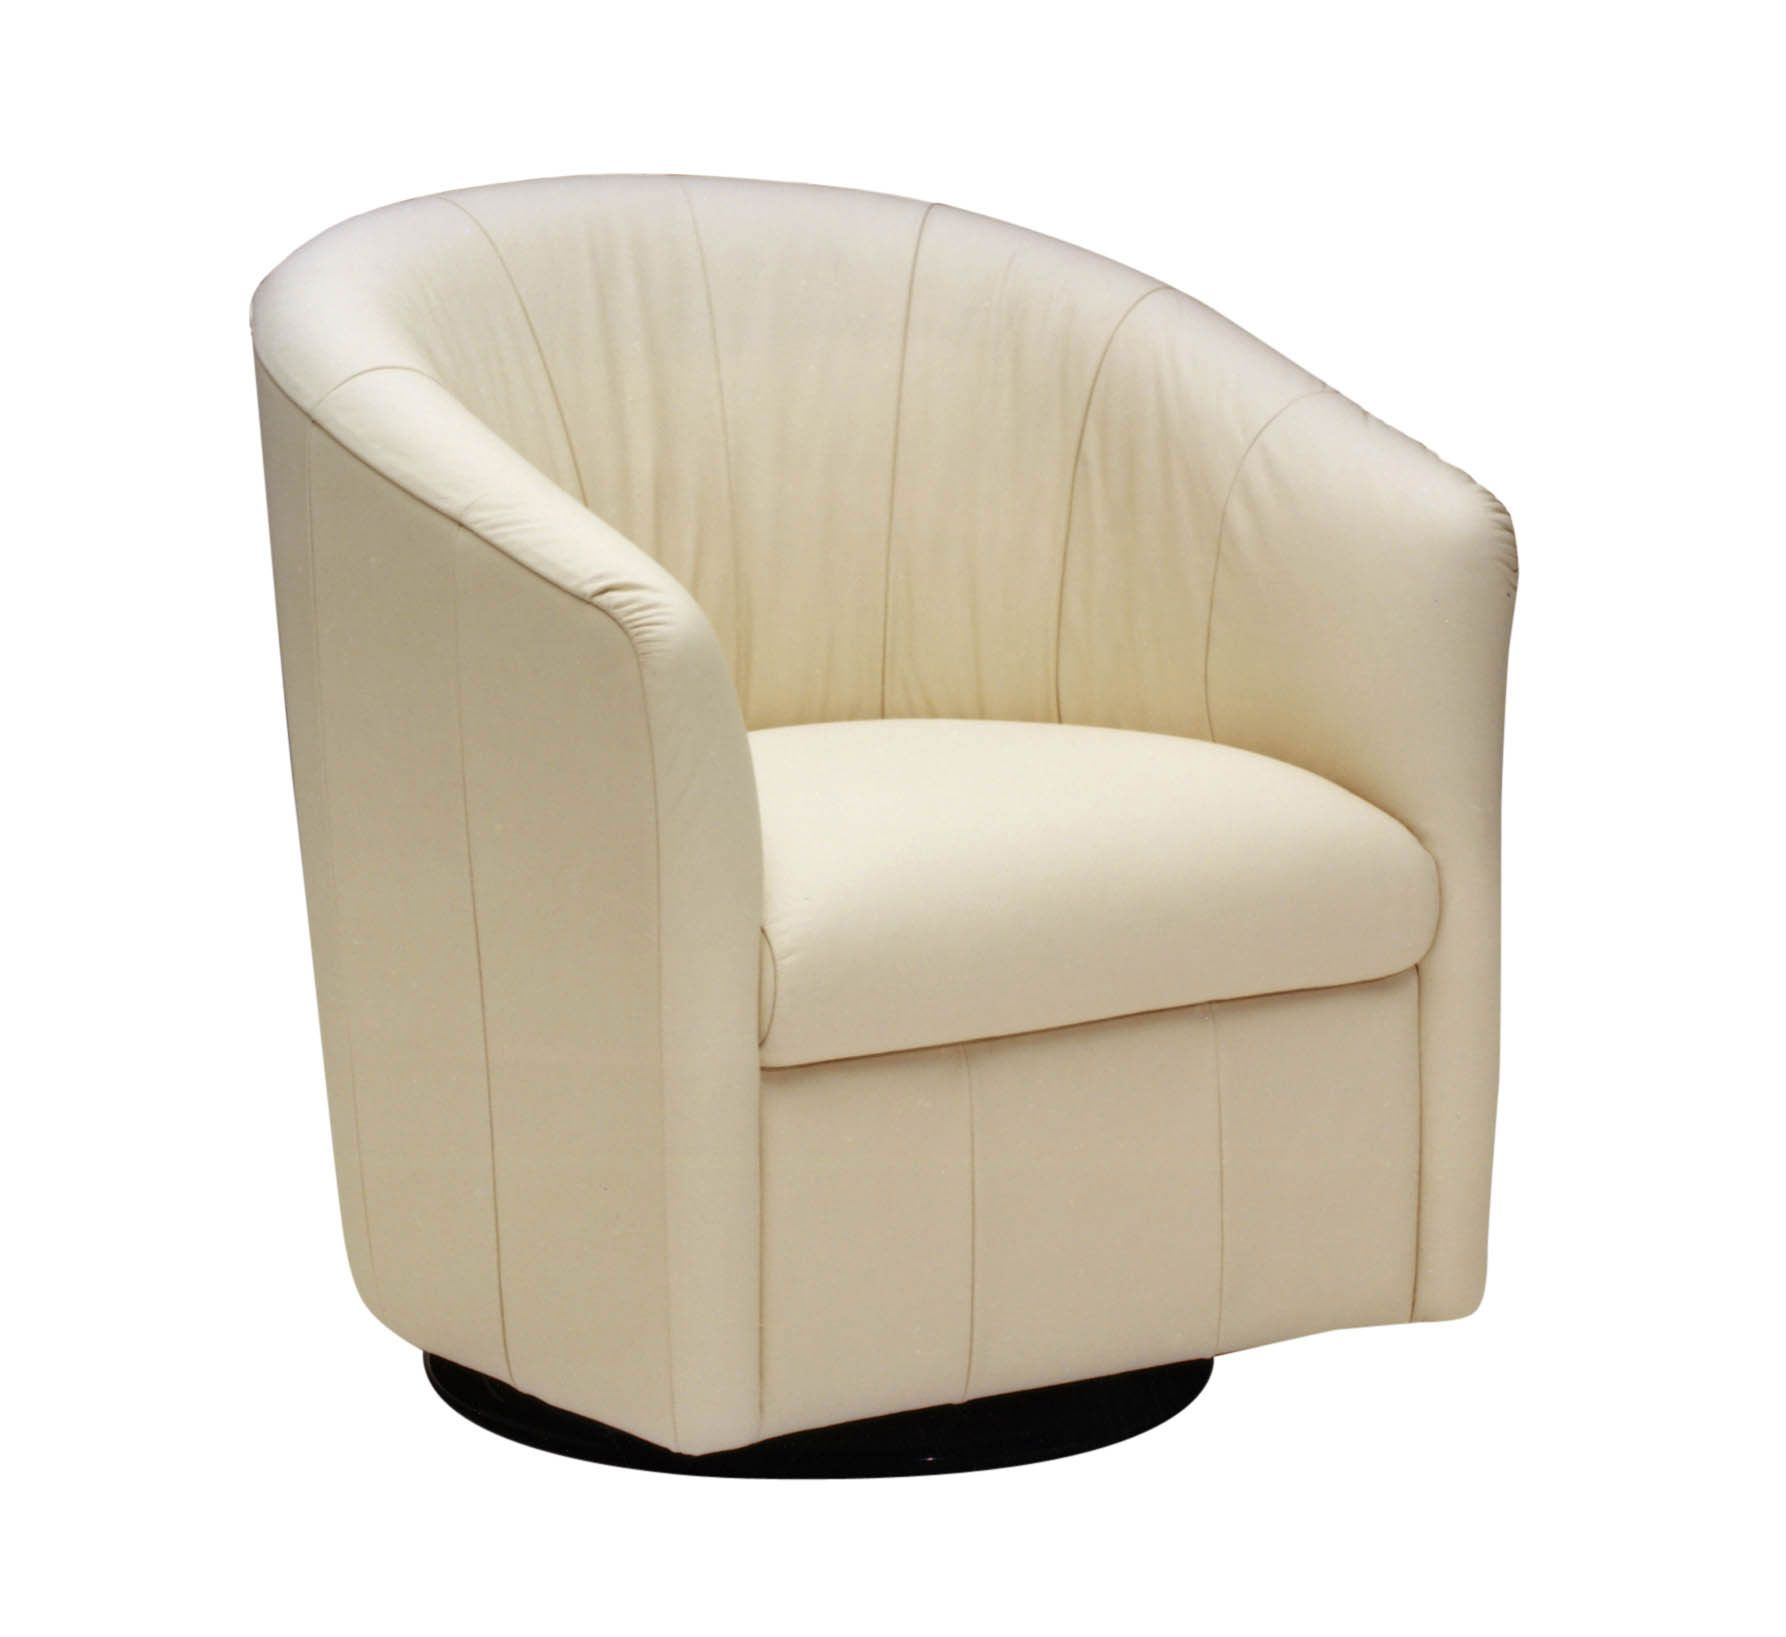 Chair by modelhom on memorial day sale 2017 white chair